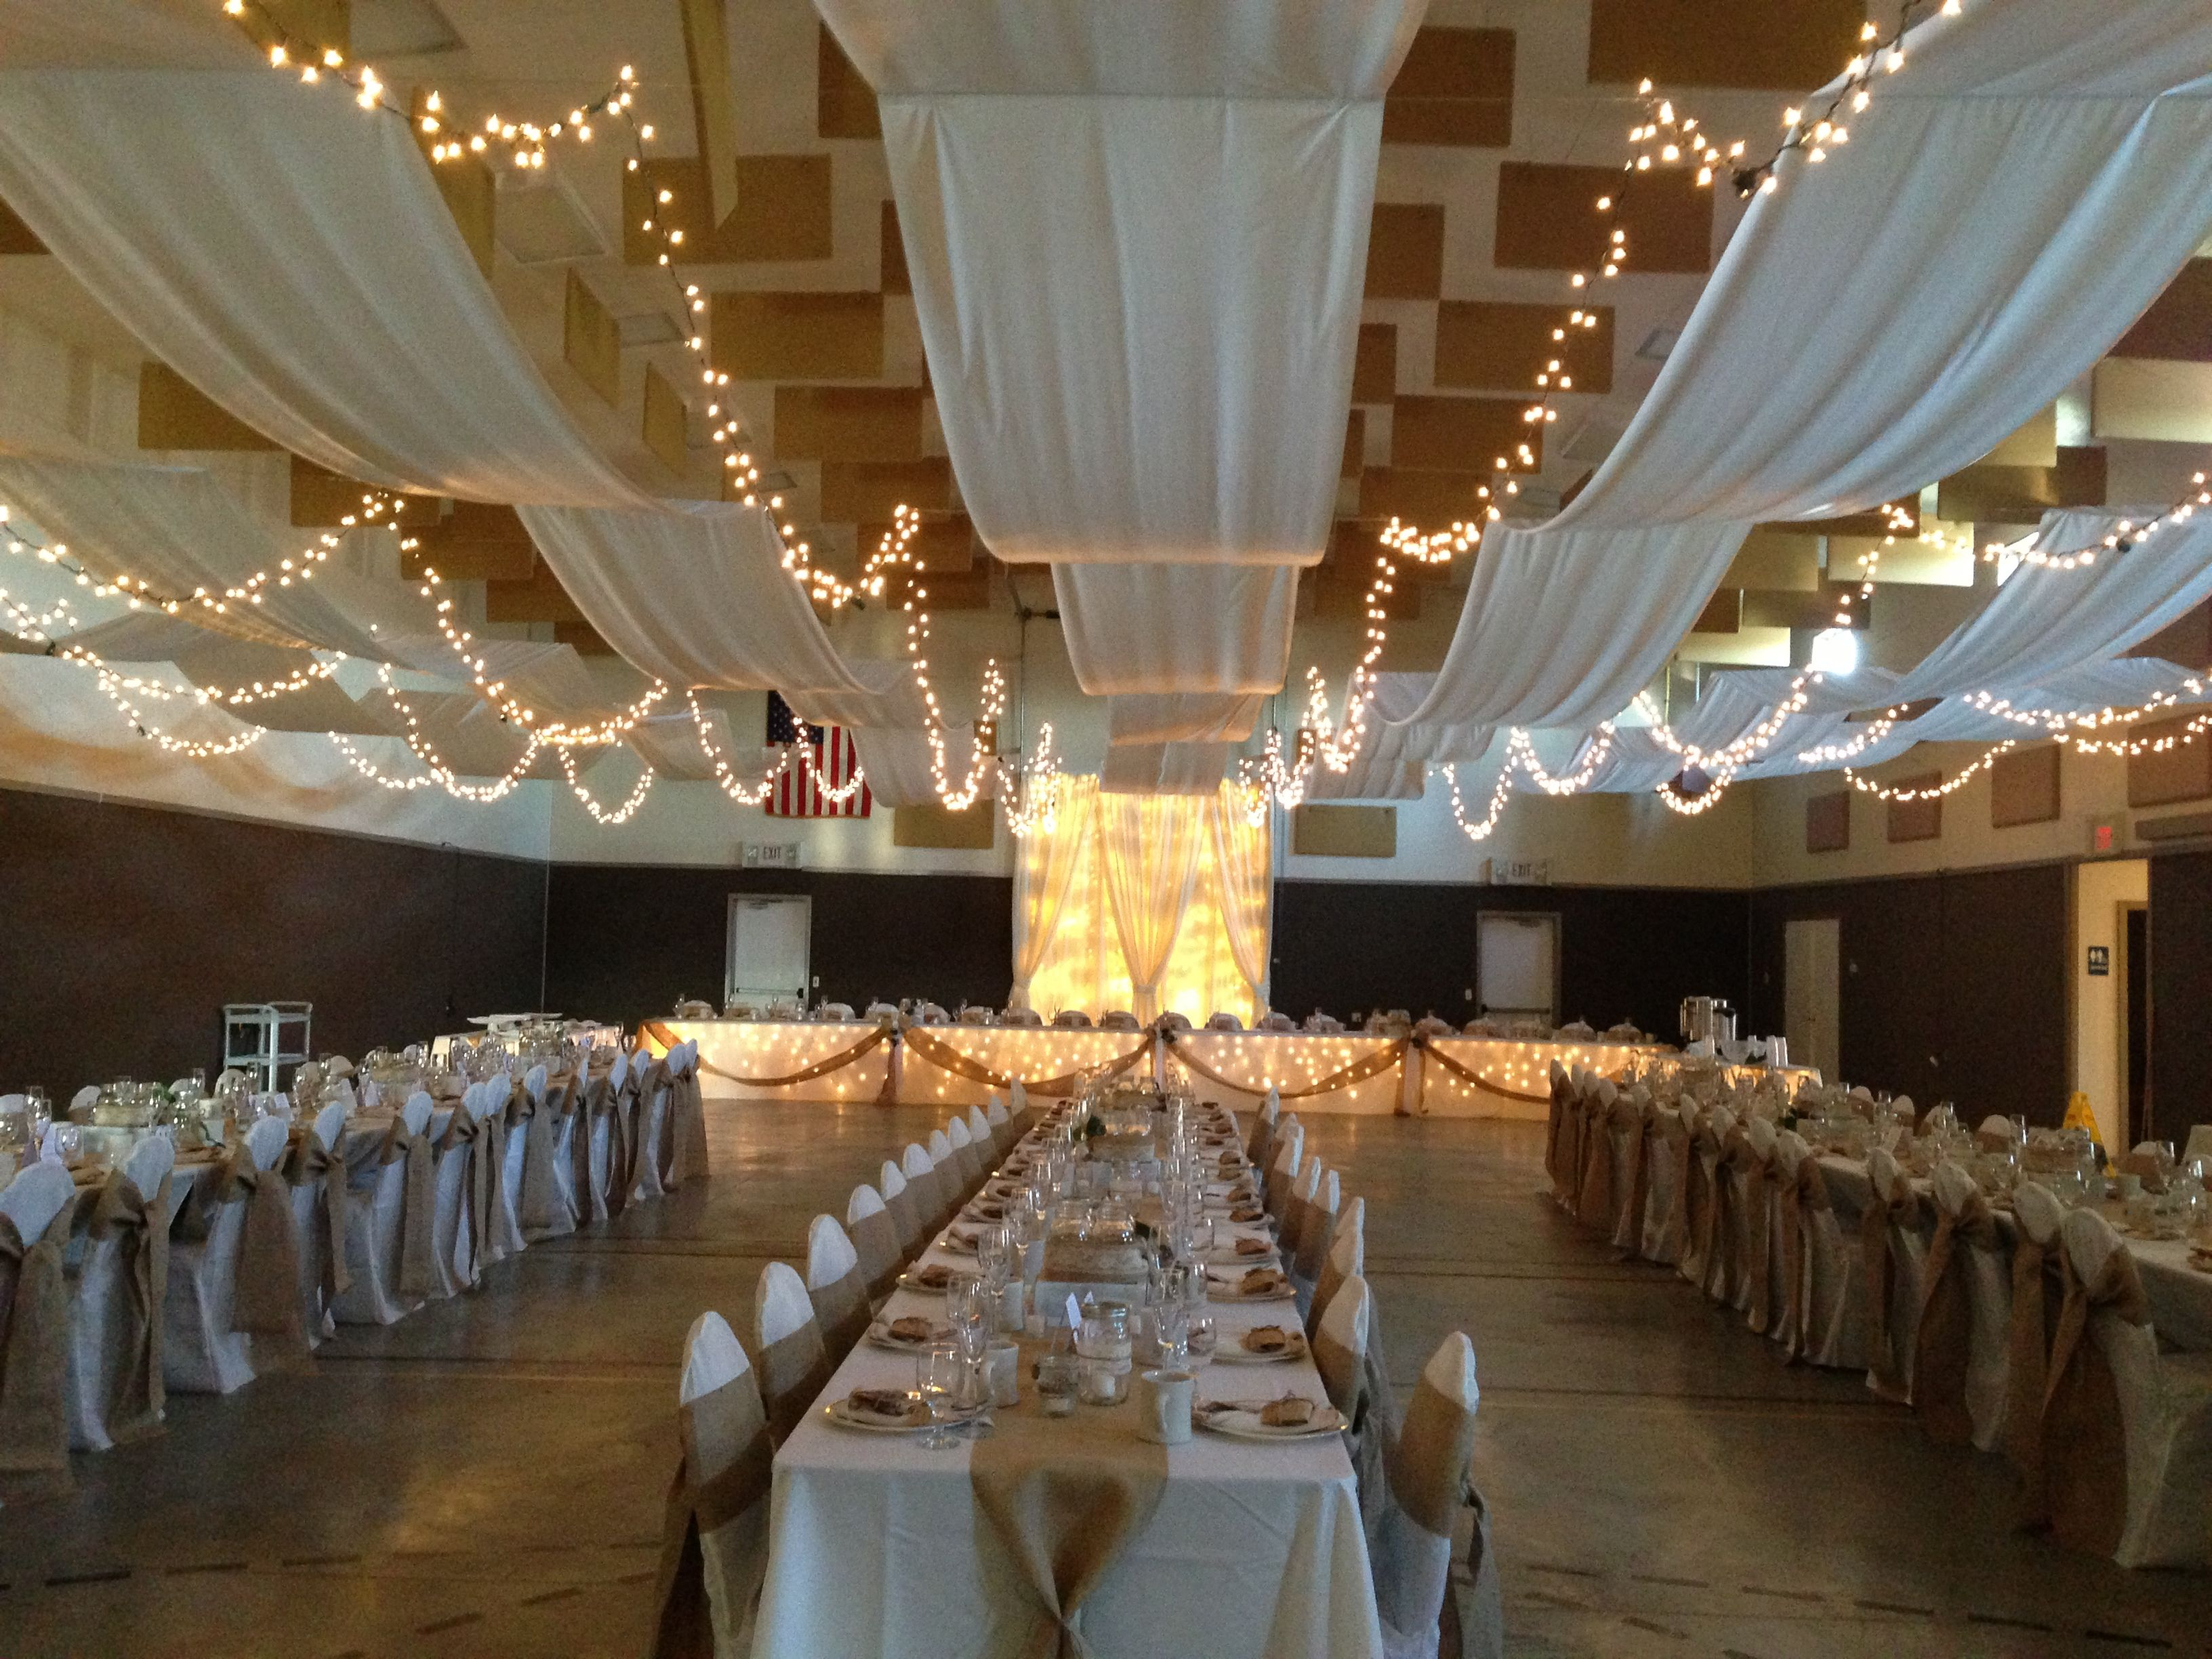 Church Gym Wedding Decor Draped Ceiling Rustic We Drilled